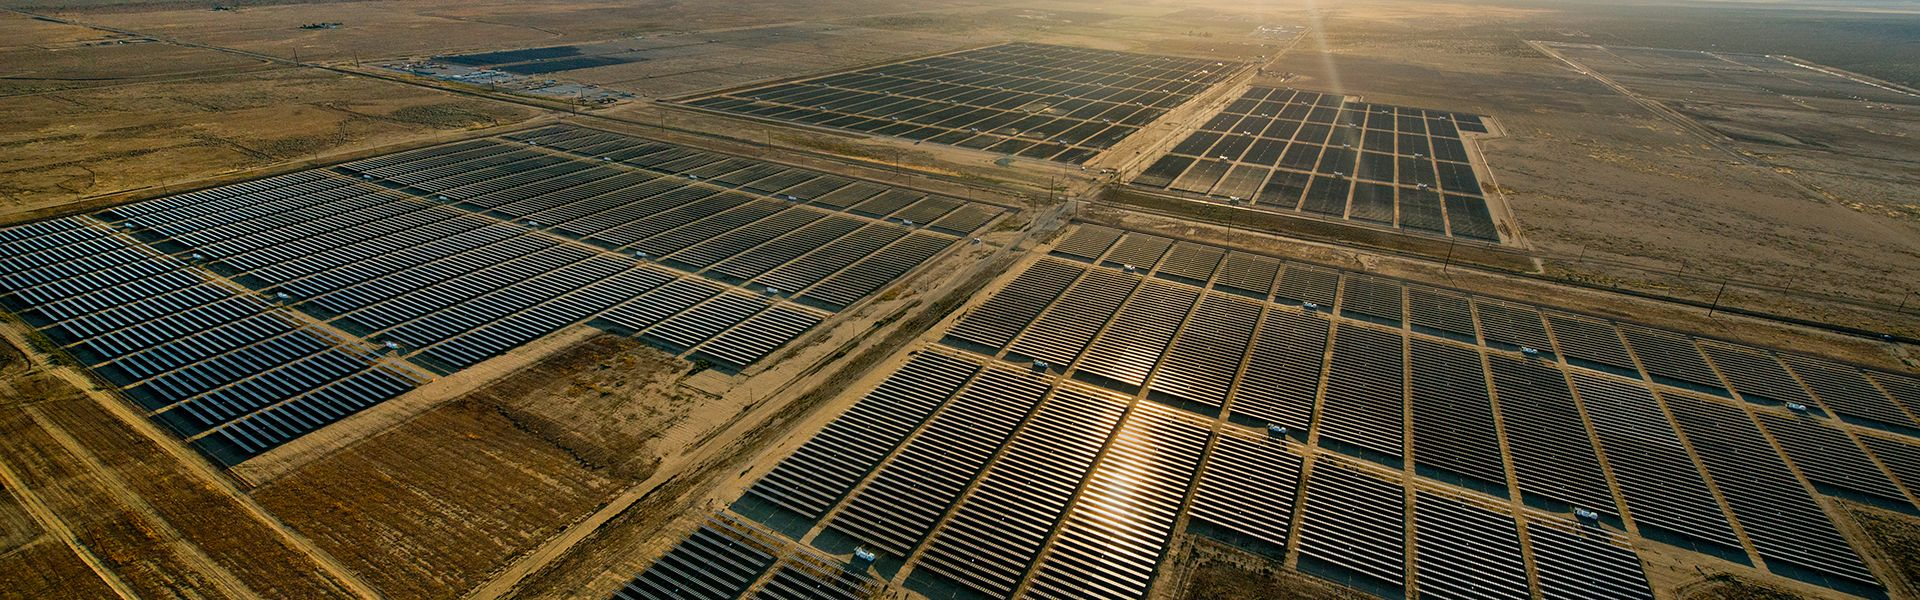 large scale solar power plant